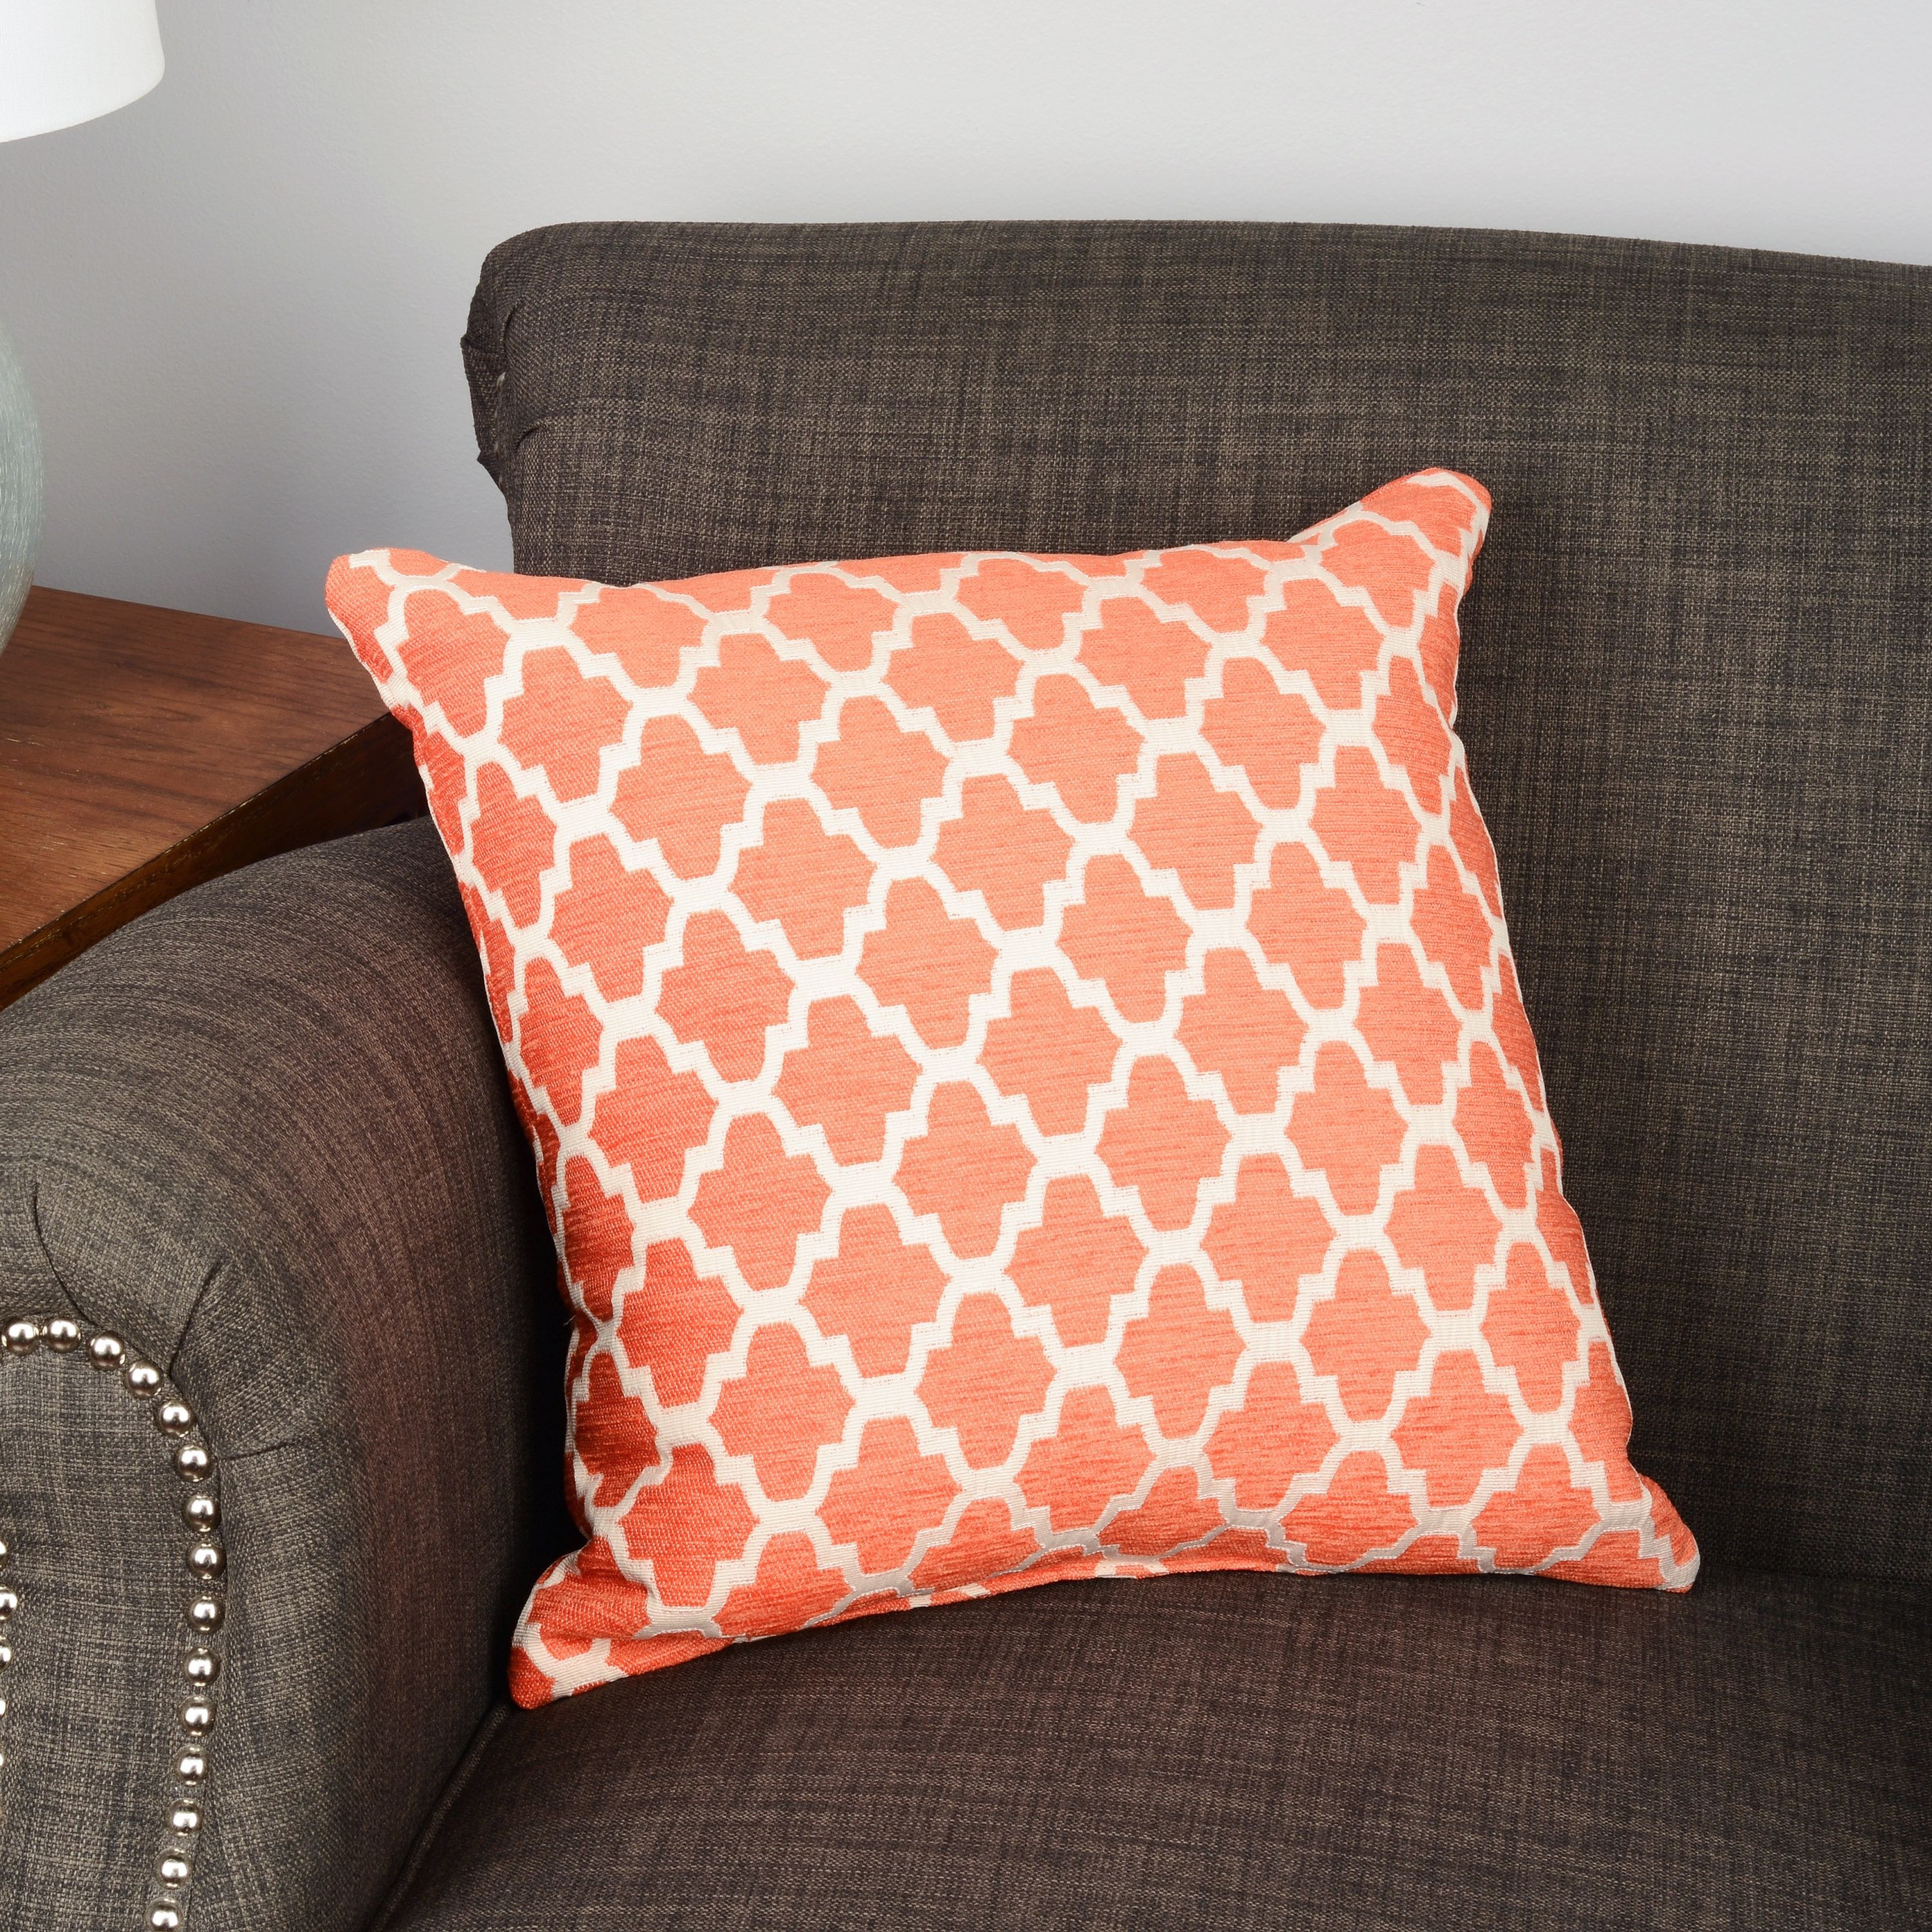 product with pillows kandinsky pillow handembroidered cover ribbon orange abstract throw modern kashmir wool cushion